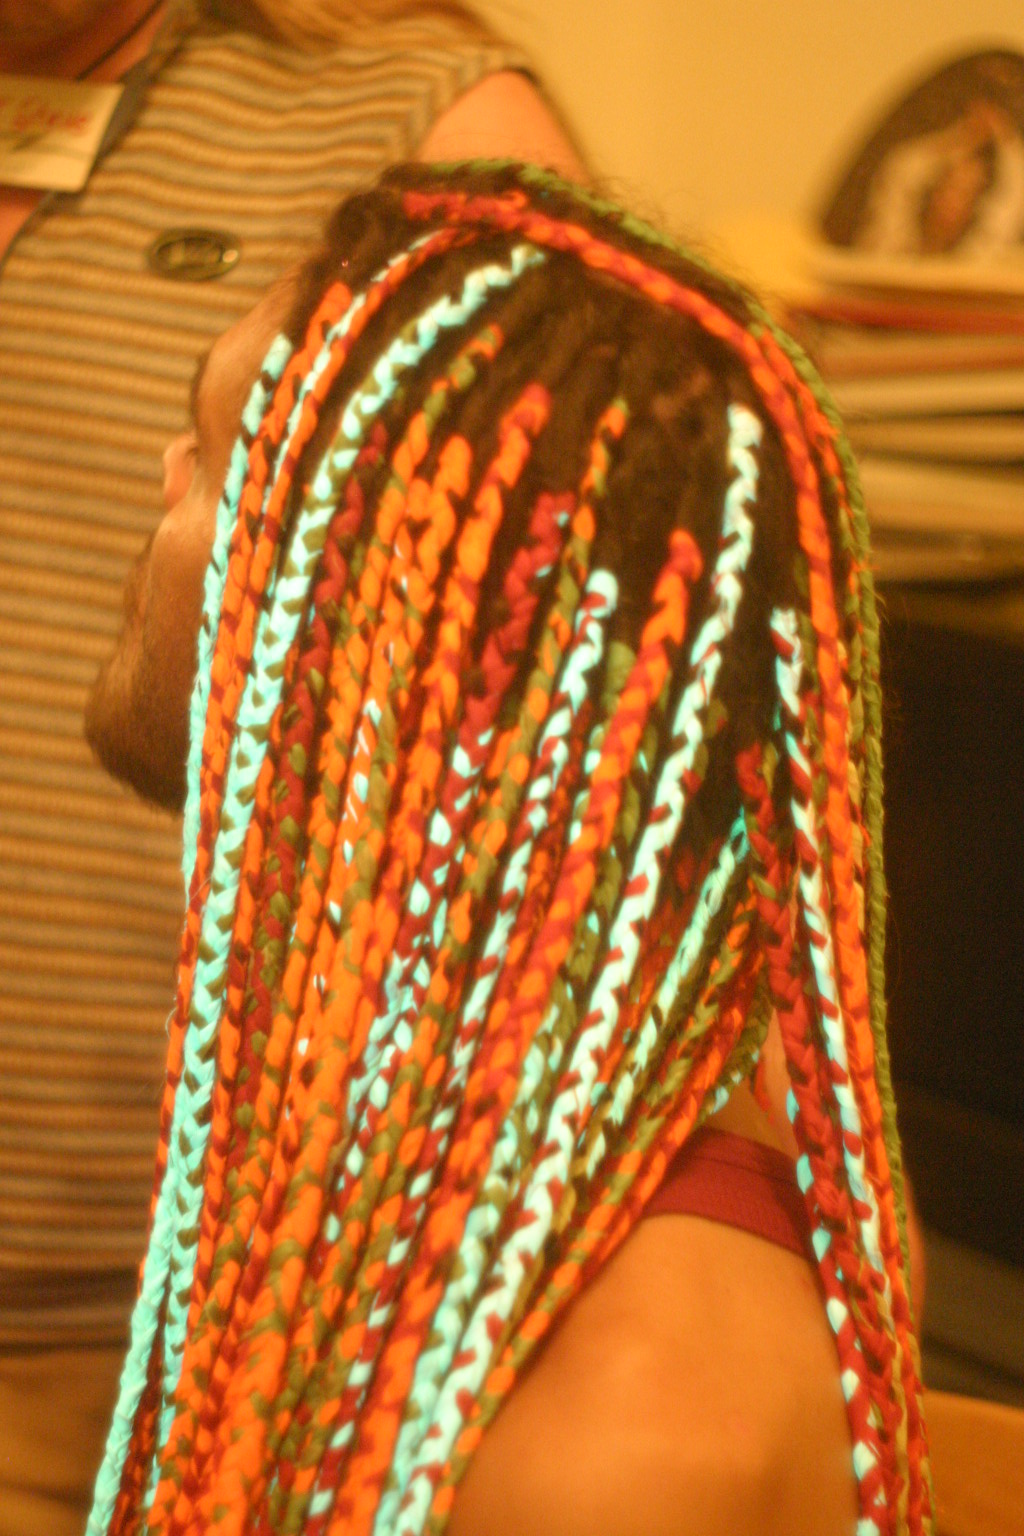 Keleb Dayglow Dreads